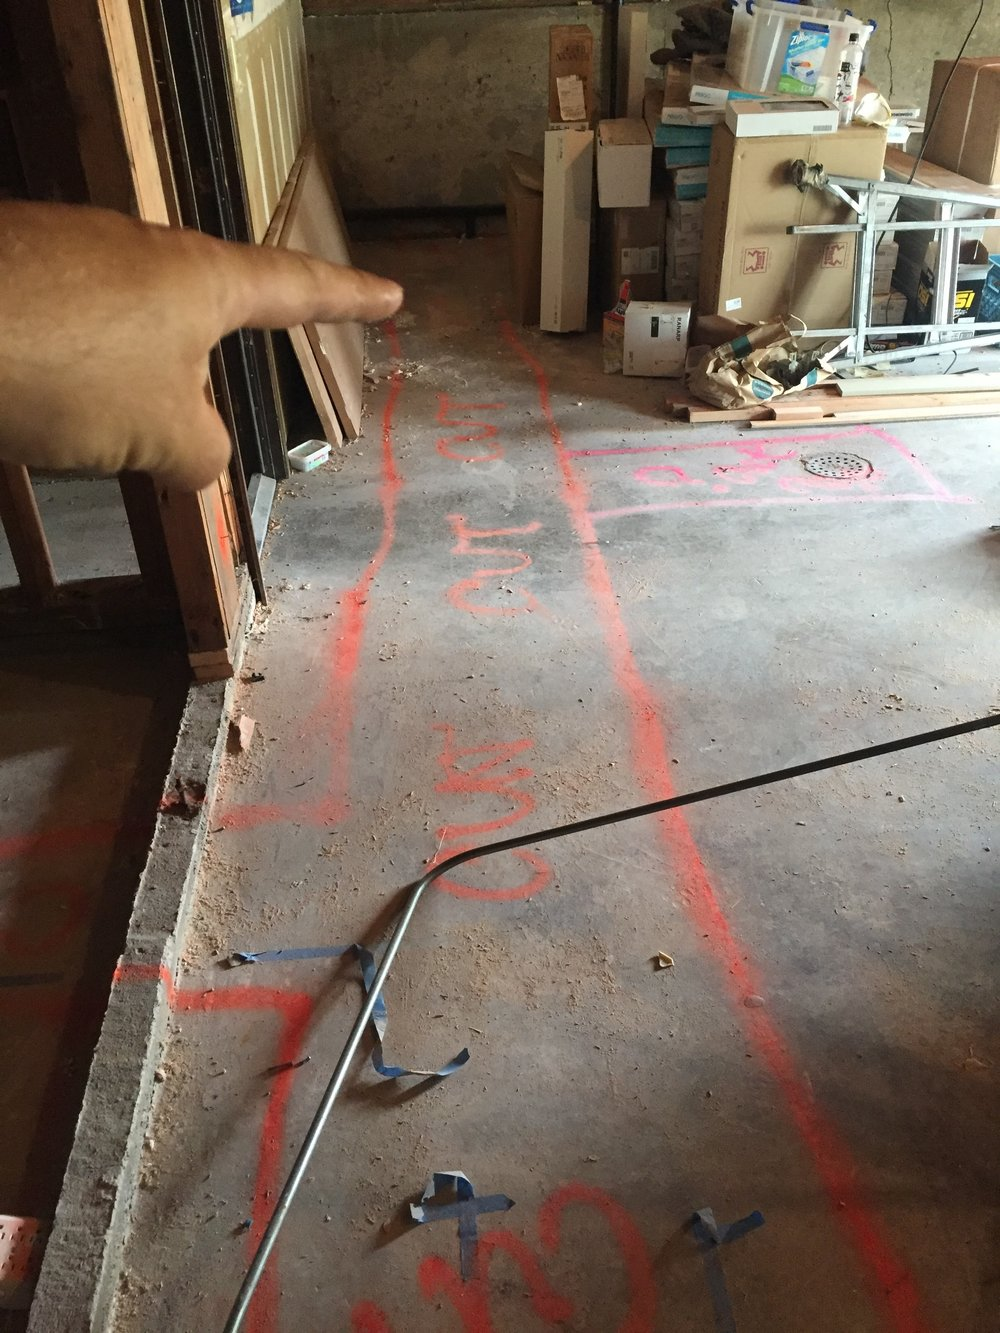 The spray paint marks on the ground are where trenches will need to be cut in order to lay down new ABS drain lines for the bathroom.